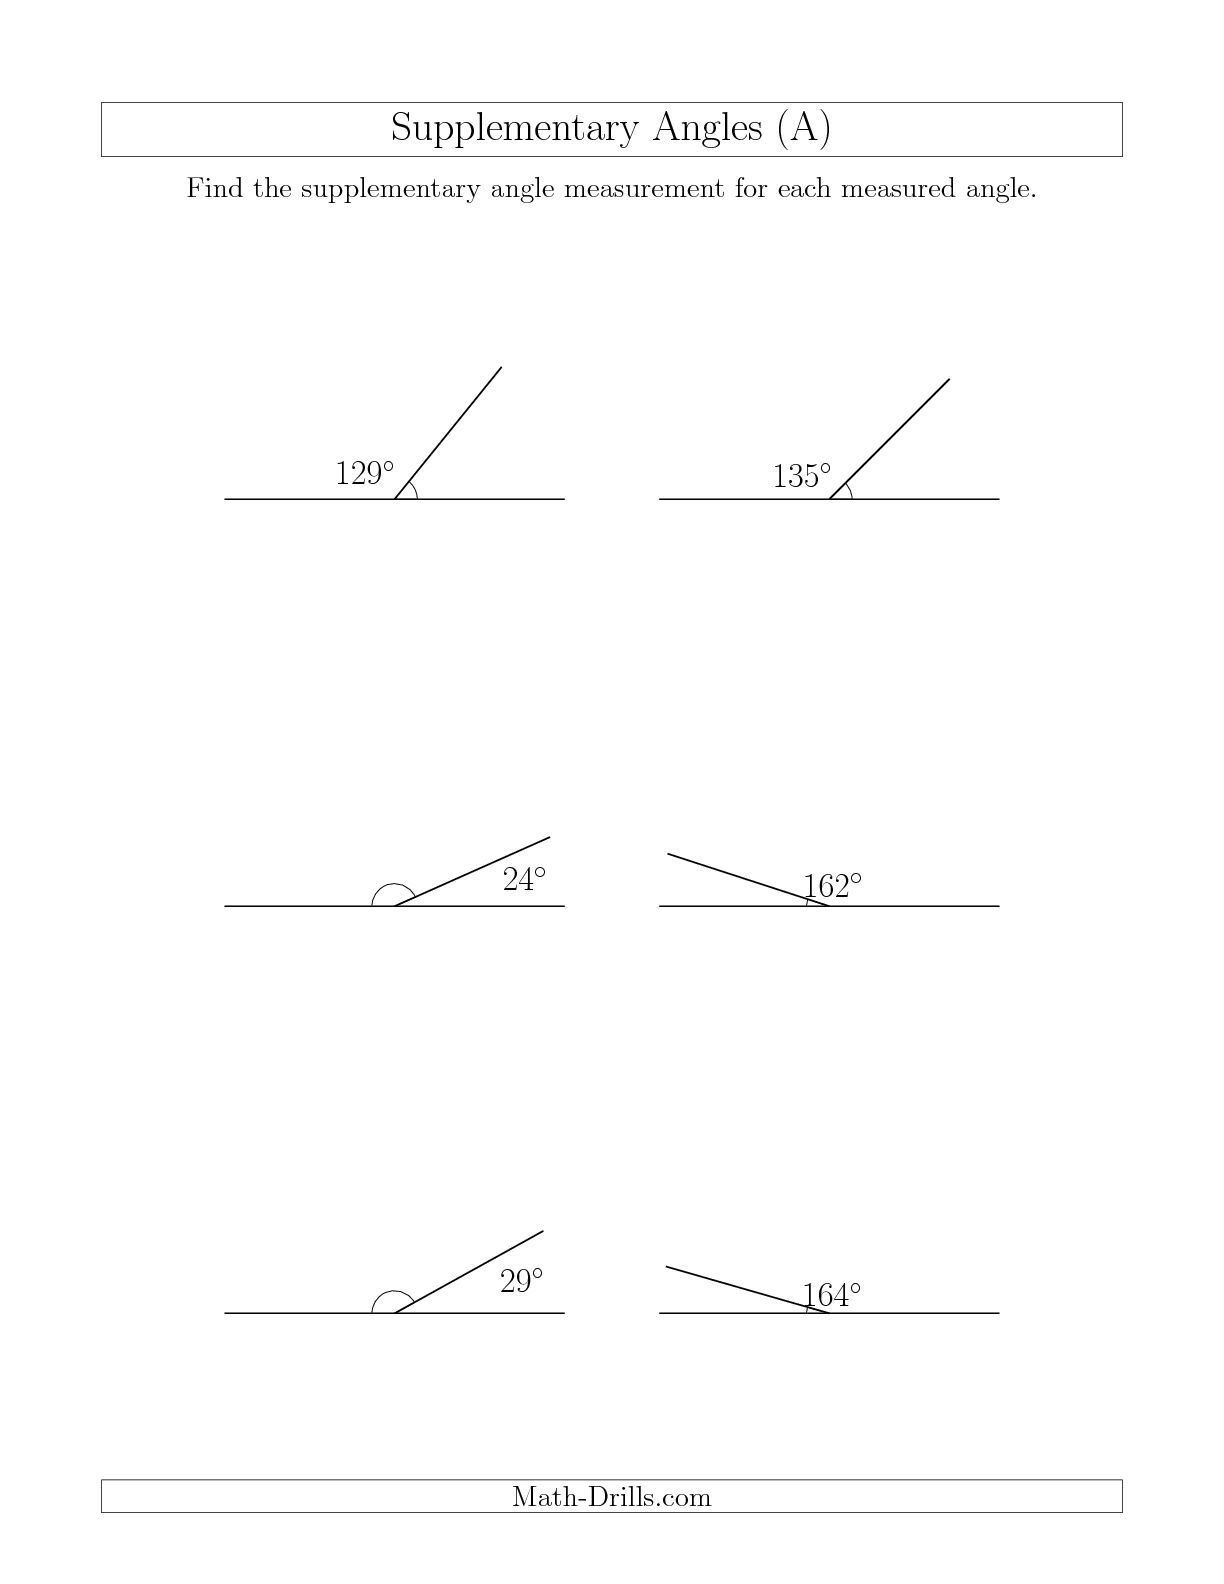 medium resolution of The Supplementary Angle Relationships (A) math worksheet from the Geometry  Worksheets page at Math-Dr…   Angles worksheet